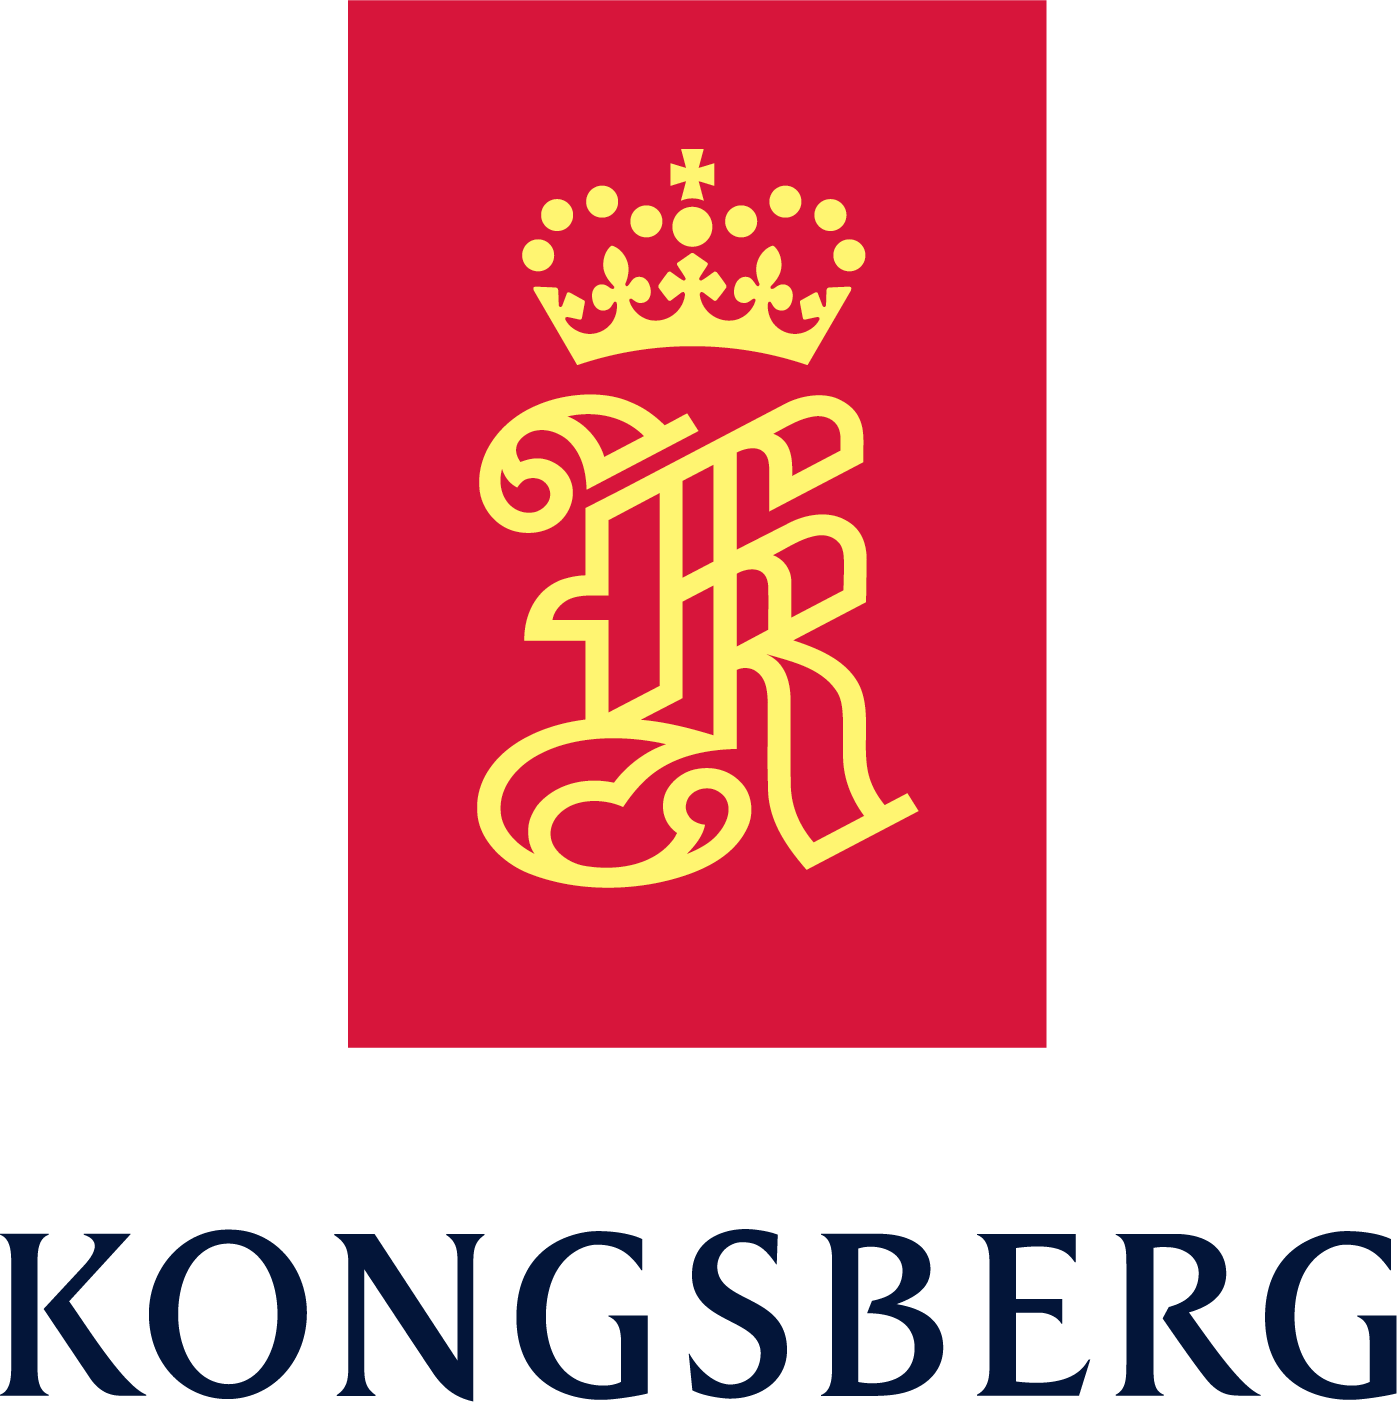 Kongsberg logo - a fancy K with a crown above it all inside a red rectangle and KONGSBERG underneath the rectangle